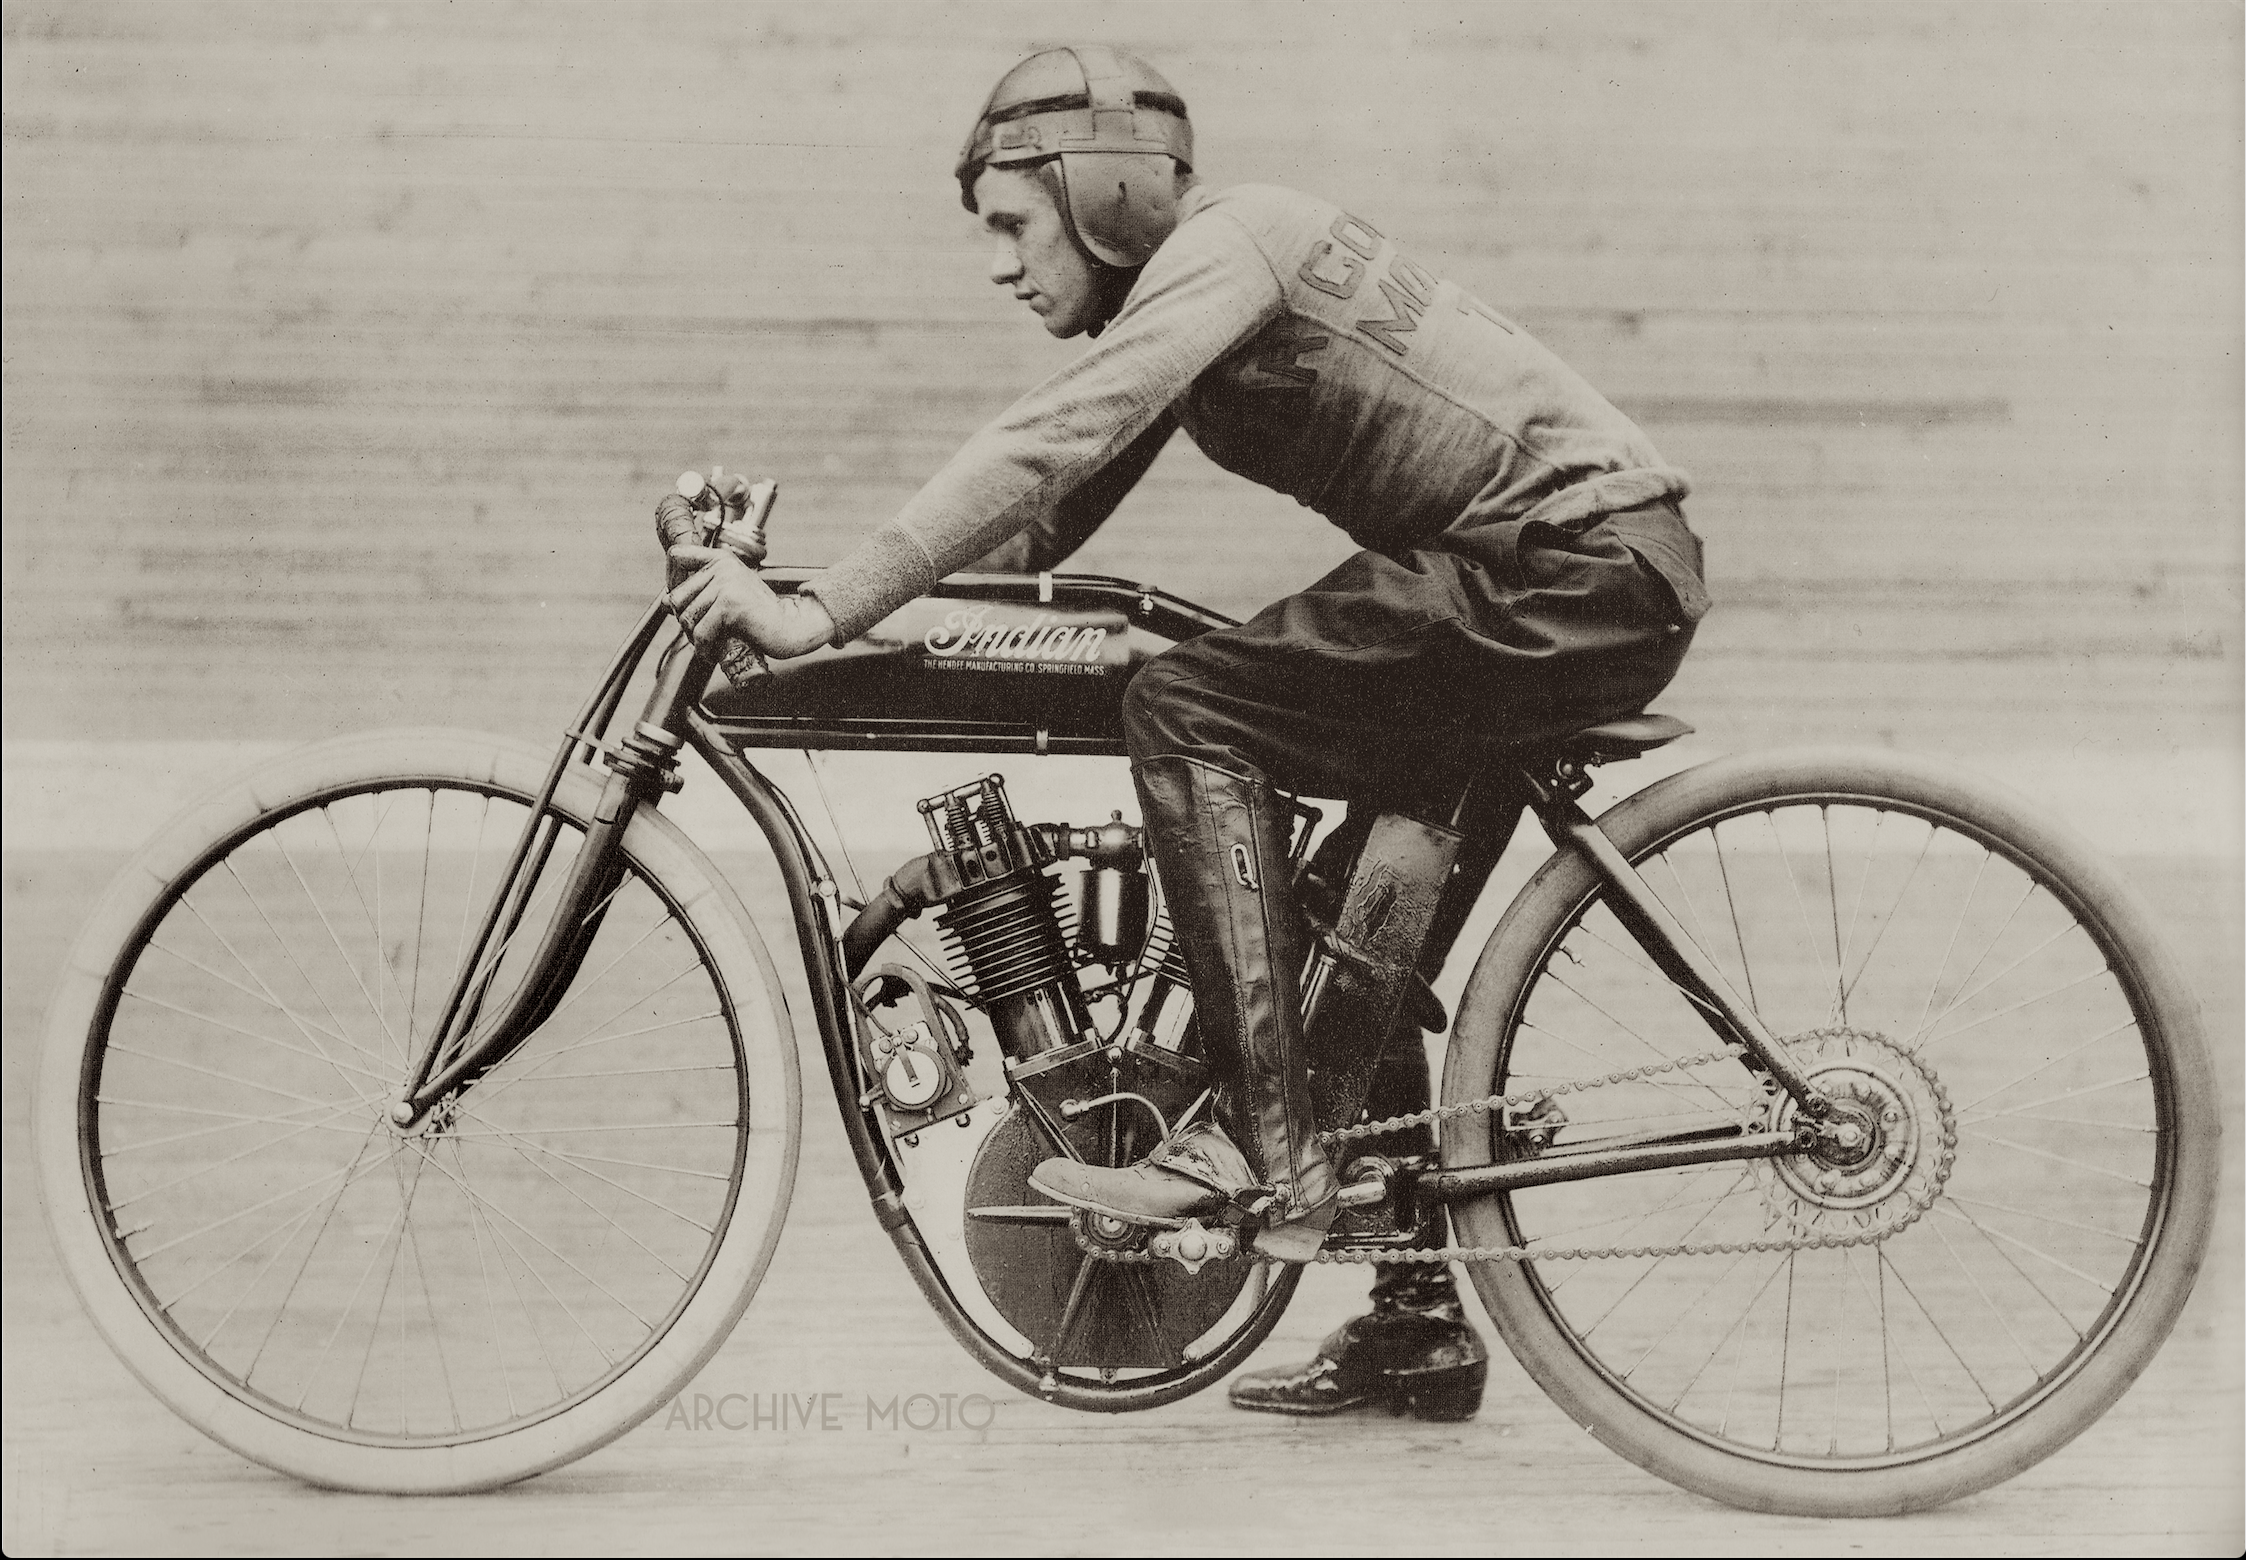 Seen in this photo is the 20 year old Texas Cyclone, star of professional board track racing in 1912, Eddie Hasha onboard his No. 32 factory Big Base 8-Valve in front of the 48 degree track at Columbus, OH, just before his death in the early Fall of 1912.